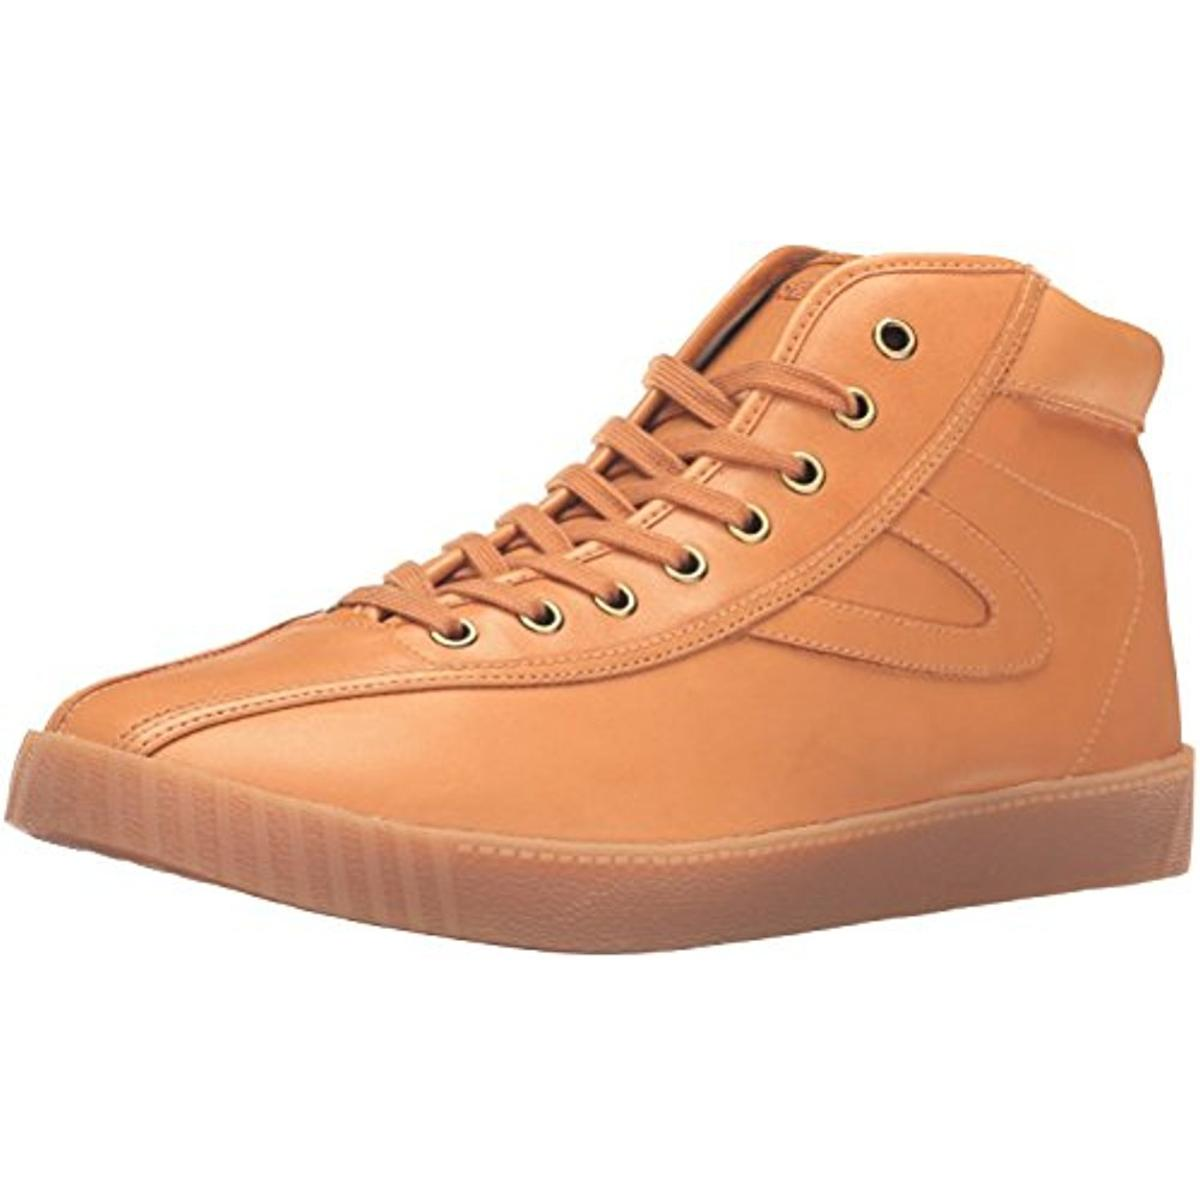 Tretorn Mens Nylite Hi6 Casual Leather Fashion Sneakers by Tretorn